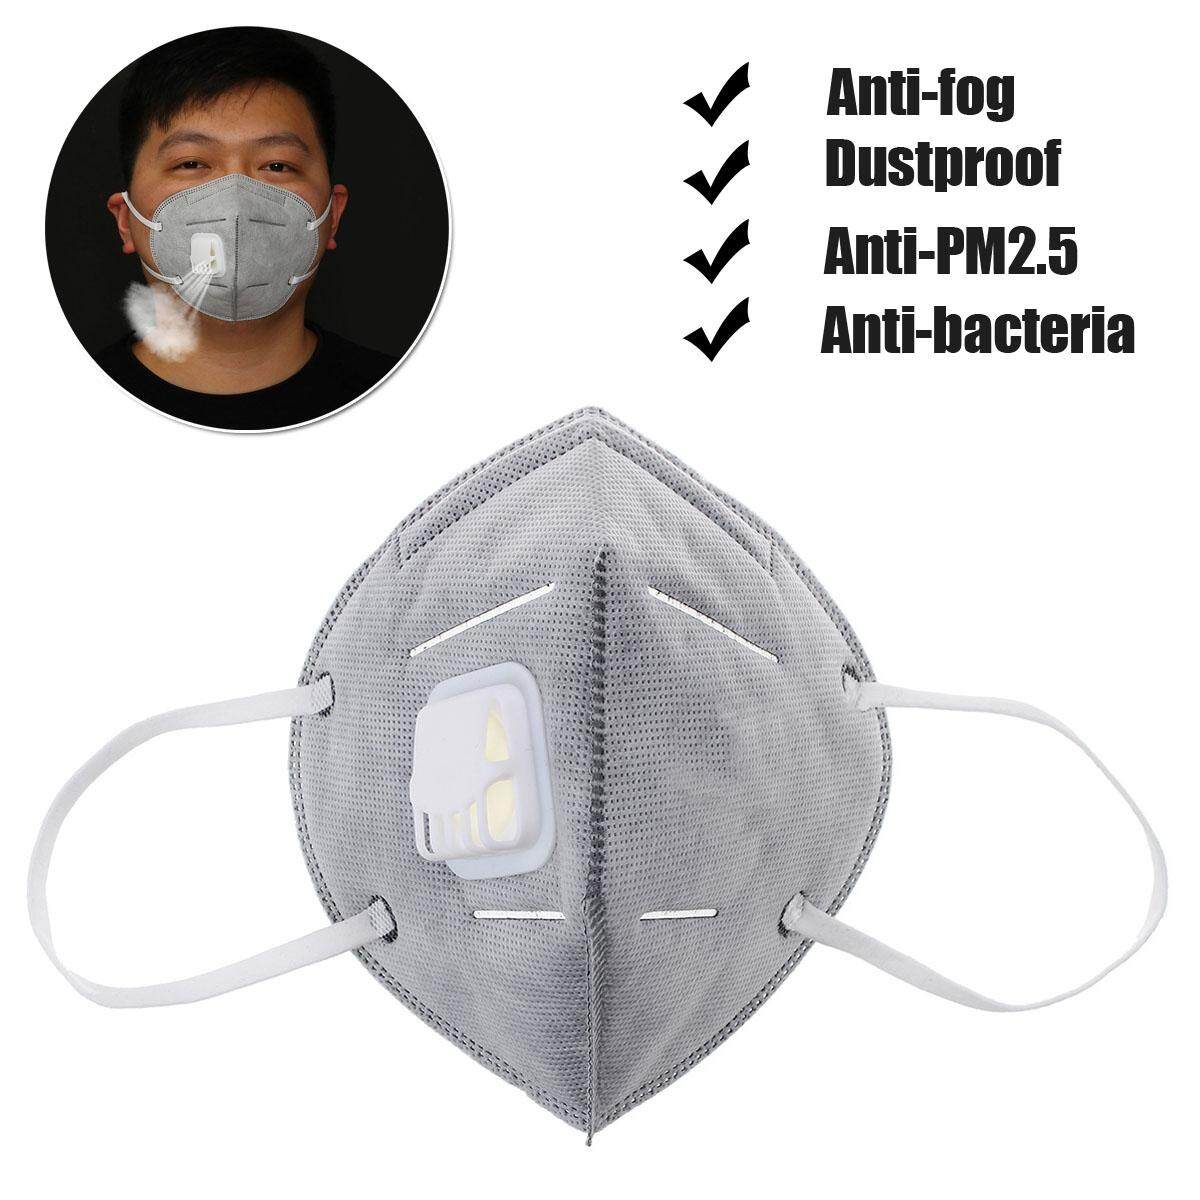 【Free Shipping + Super Deal + Limited Offer】N95 Anti-dust Air Mask Smog PM2.5 Purifier Filter Rechargable Respirator